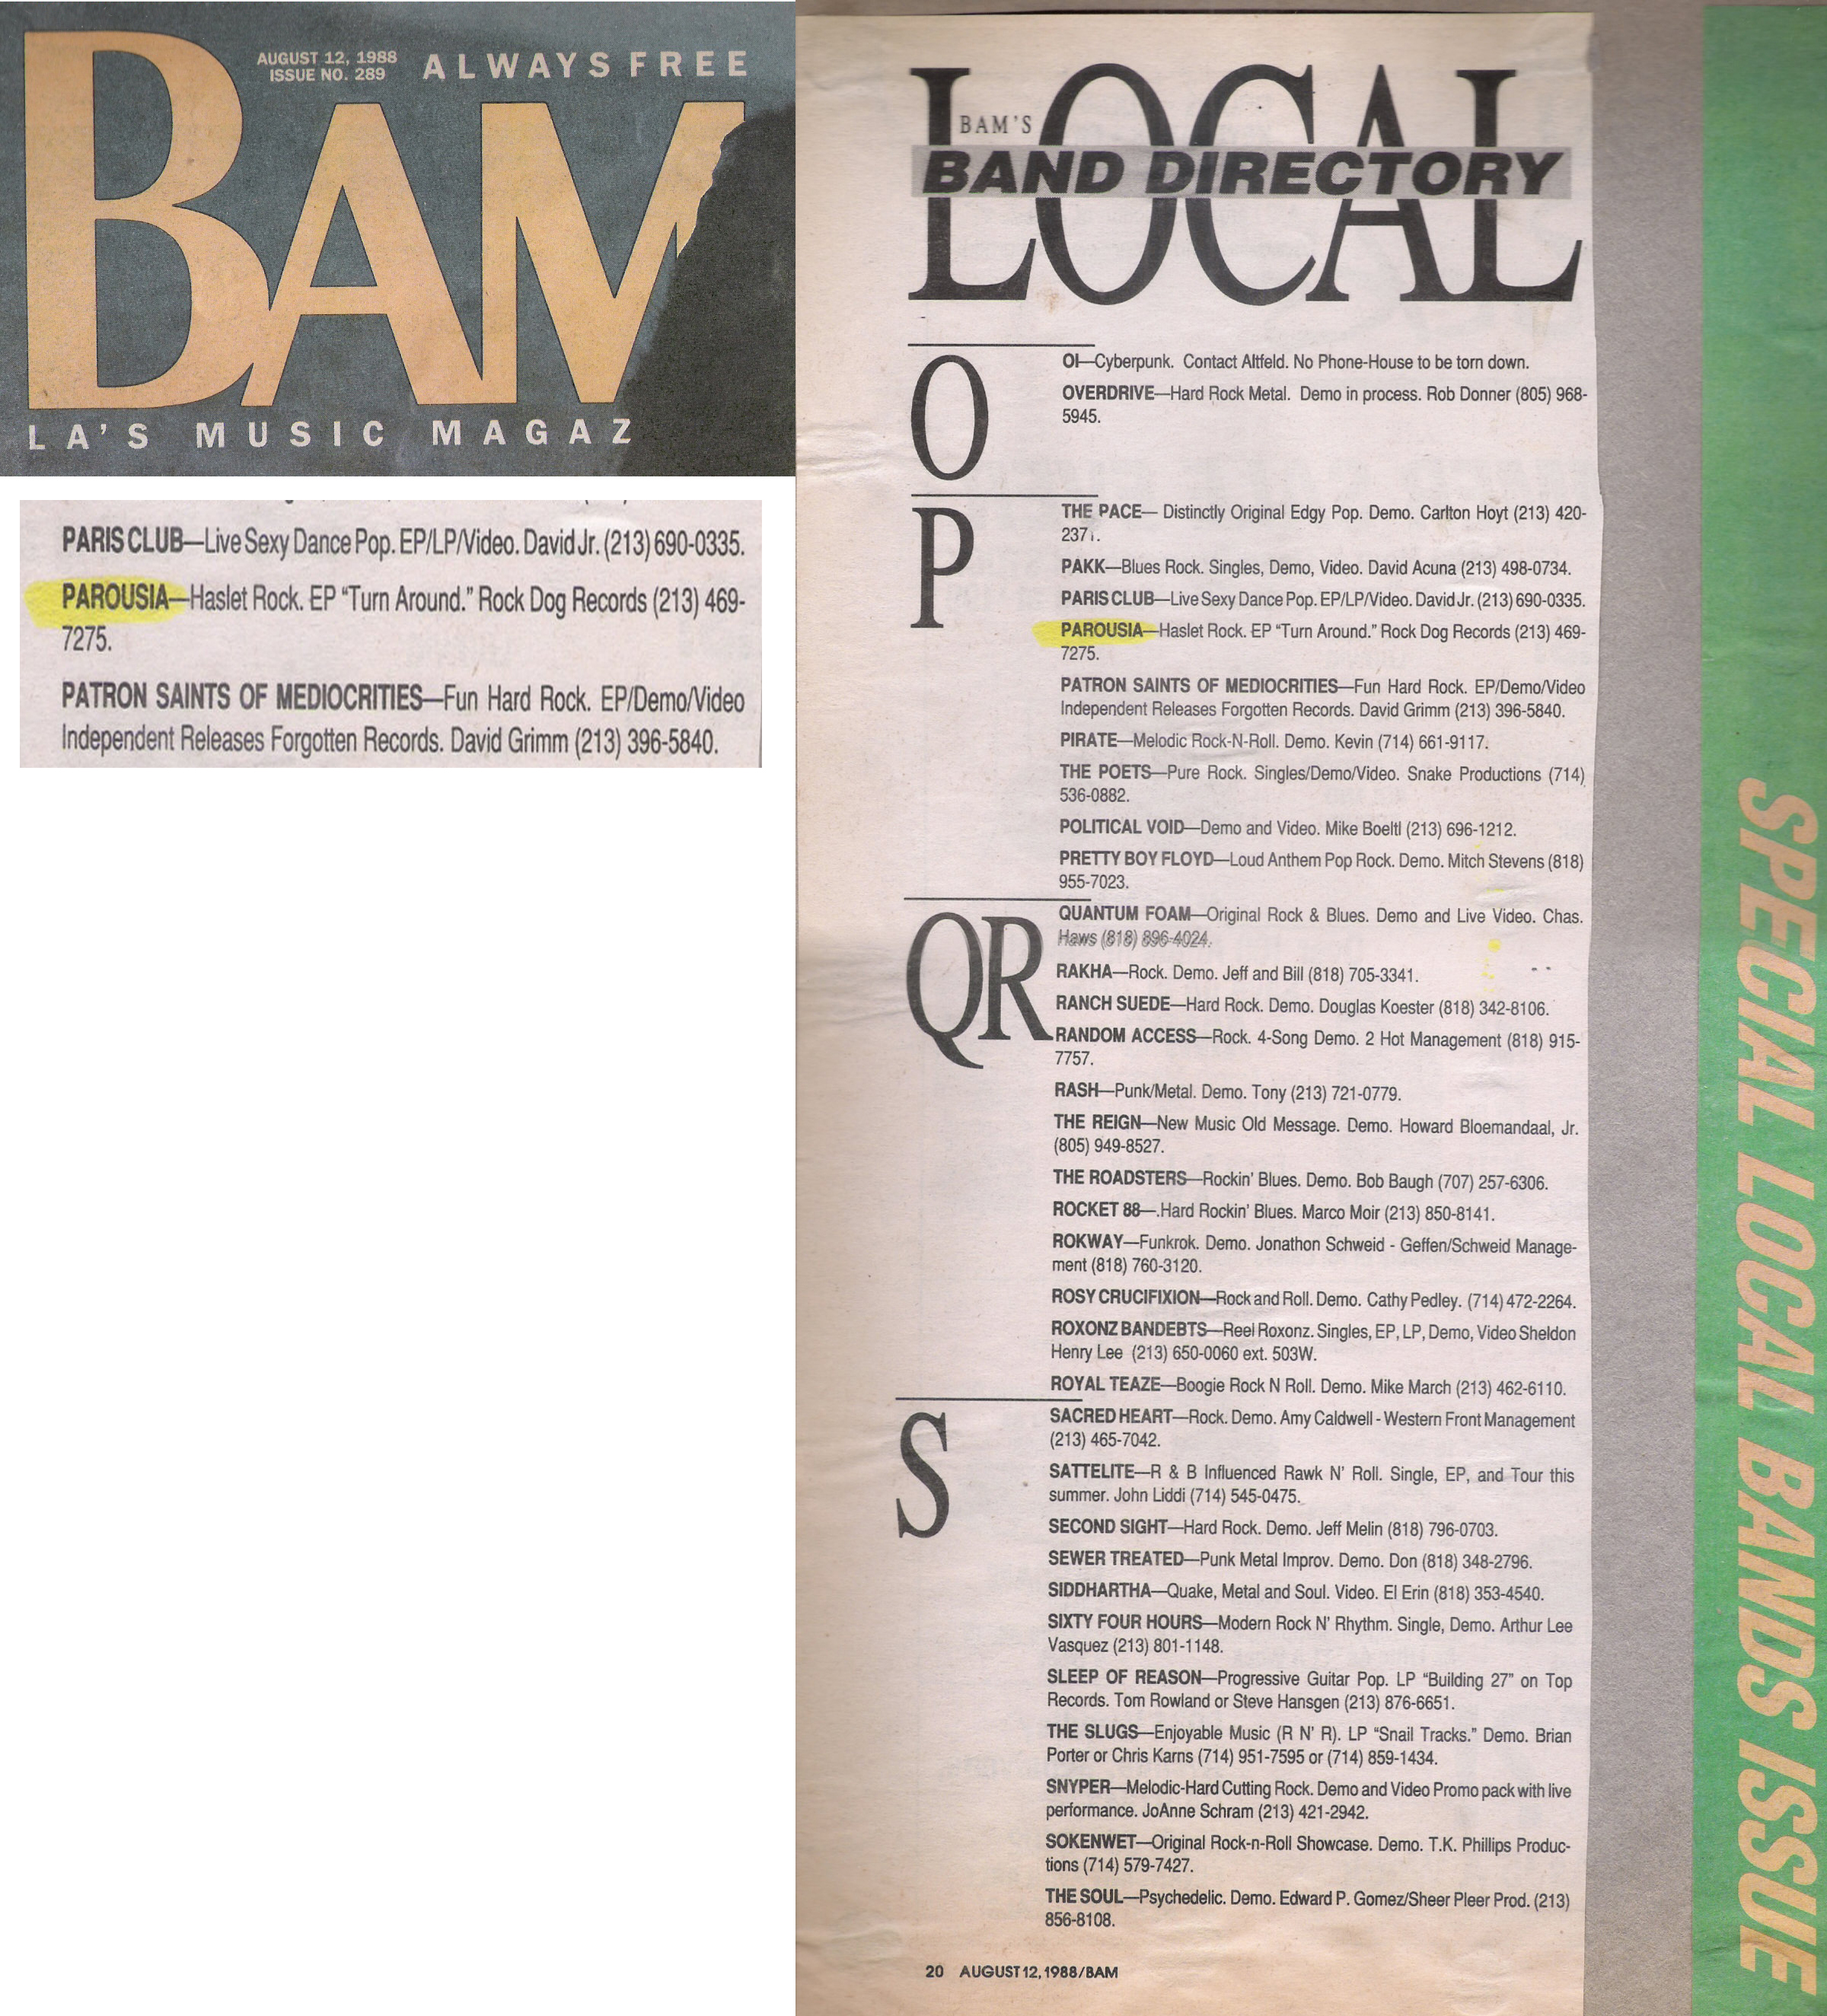 BAM local band directory, August 12, 1988